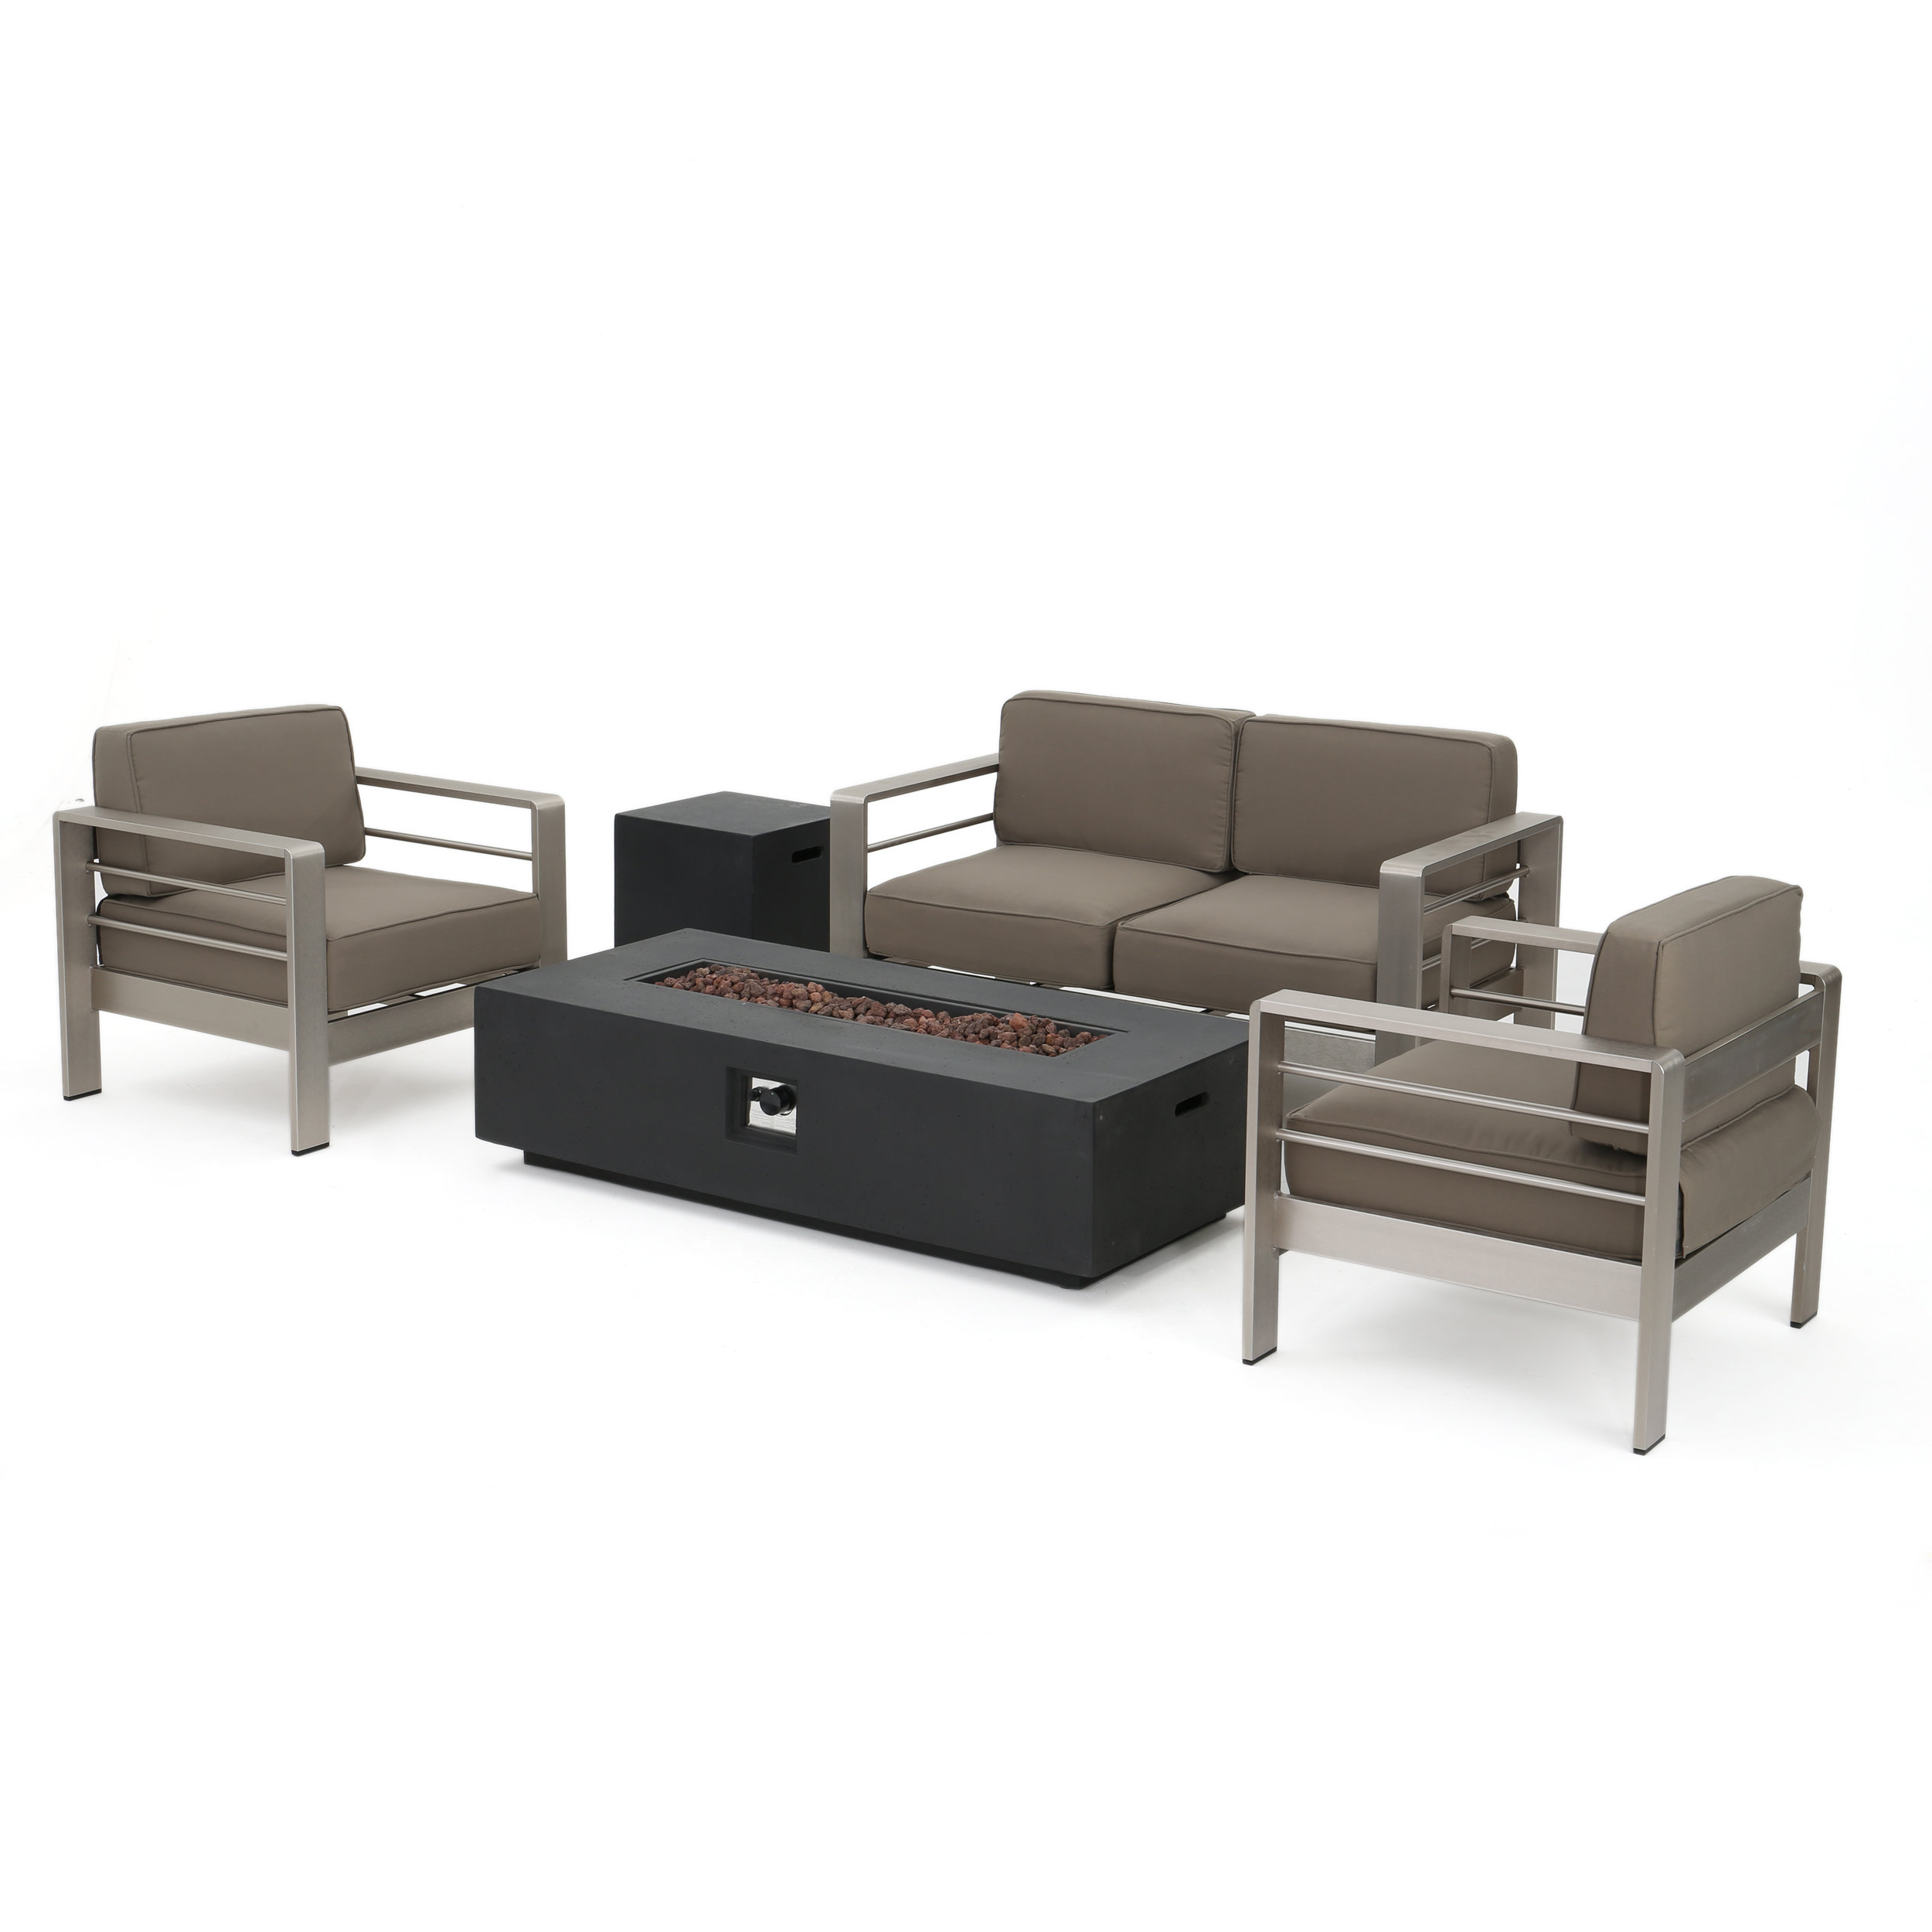 Royalston Patio Sofas With Cushions Inside Preferred Royalston 5 Piece Sofa Set With Cushions (View 17 of 20)